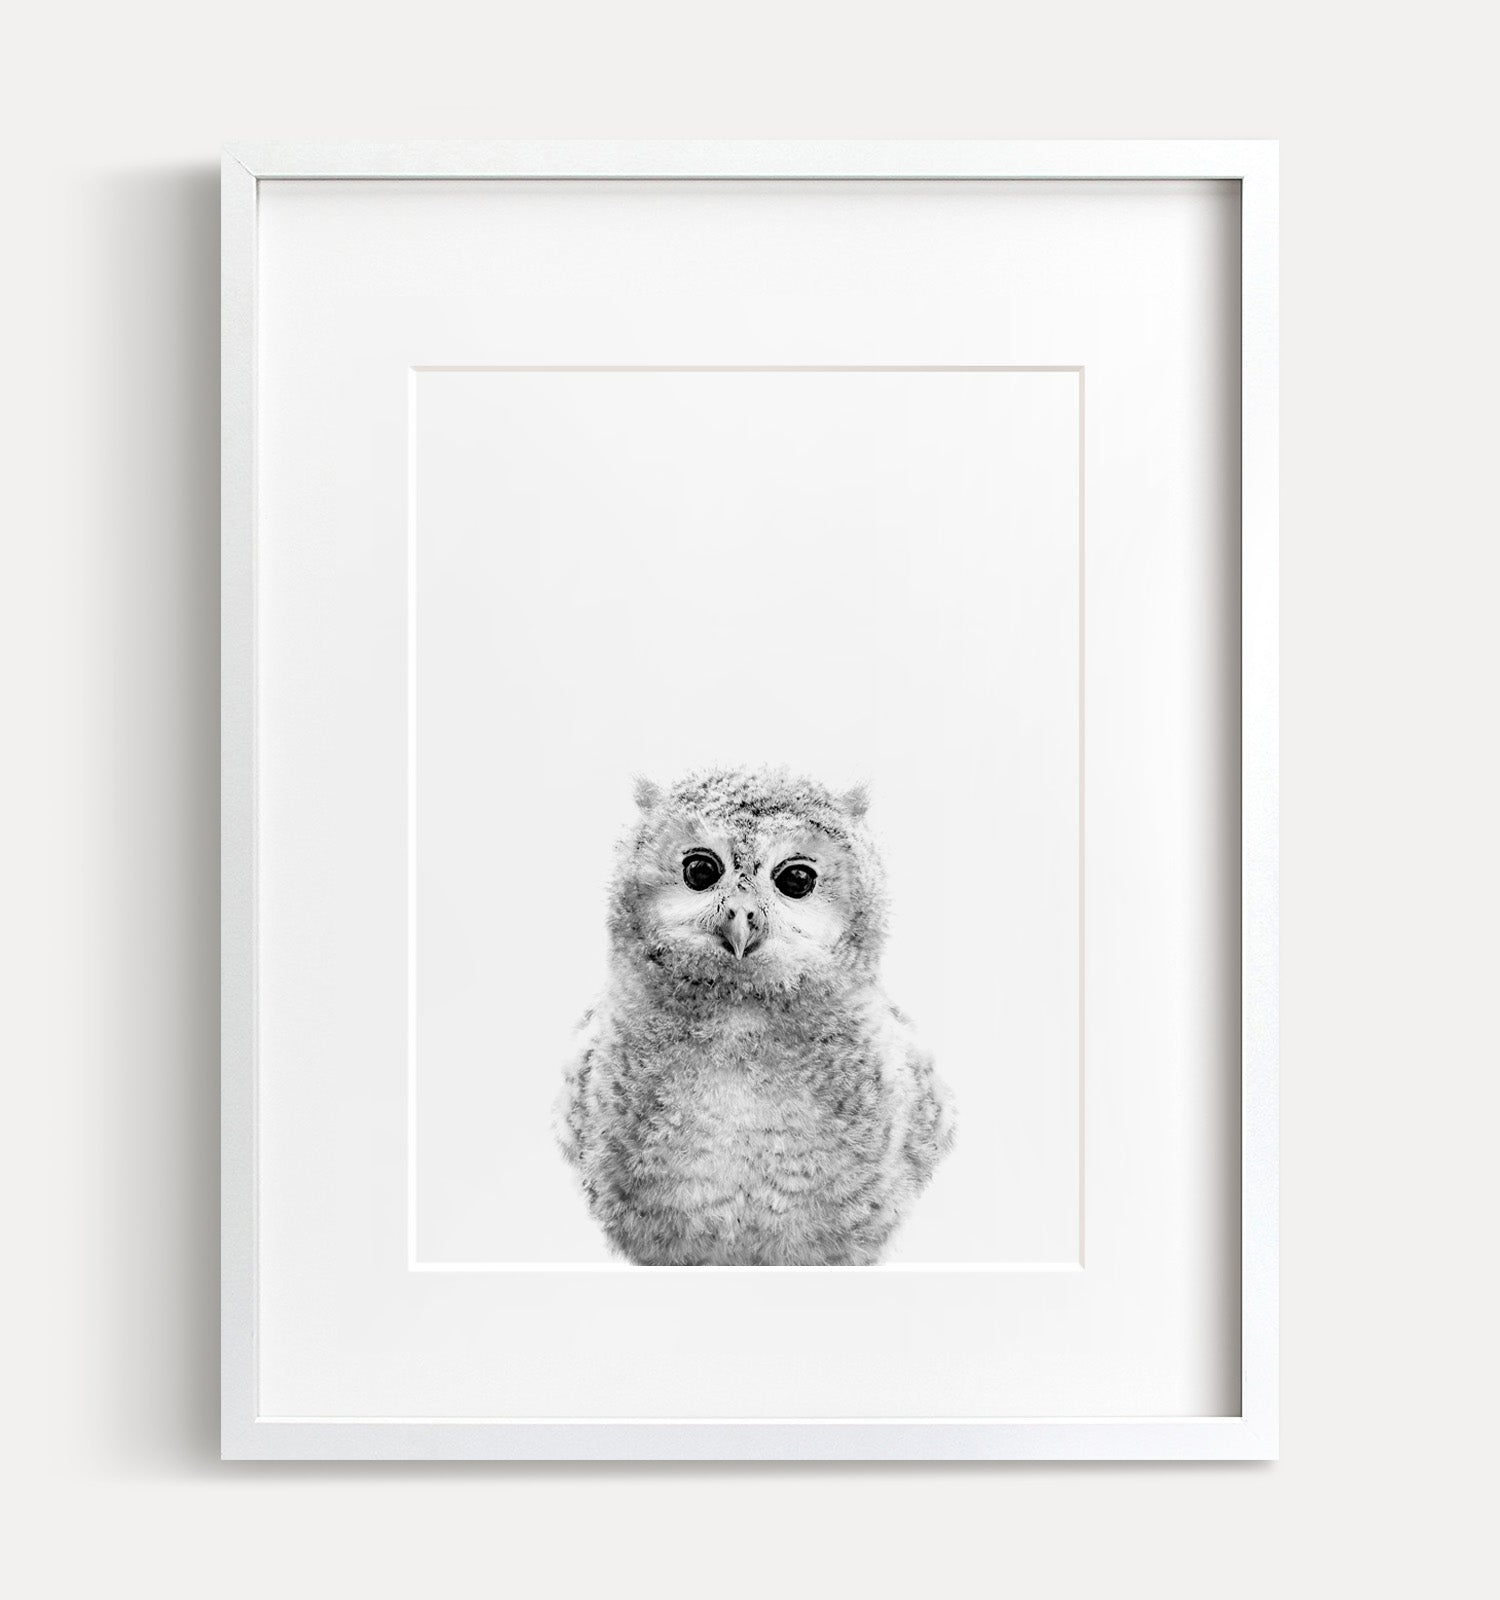 Baby Owl Printable Art - Black and White